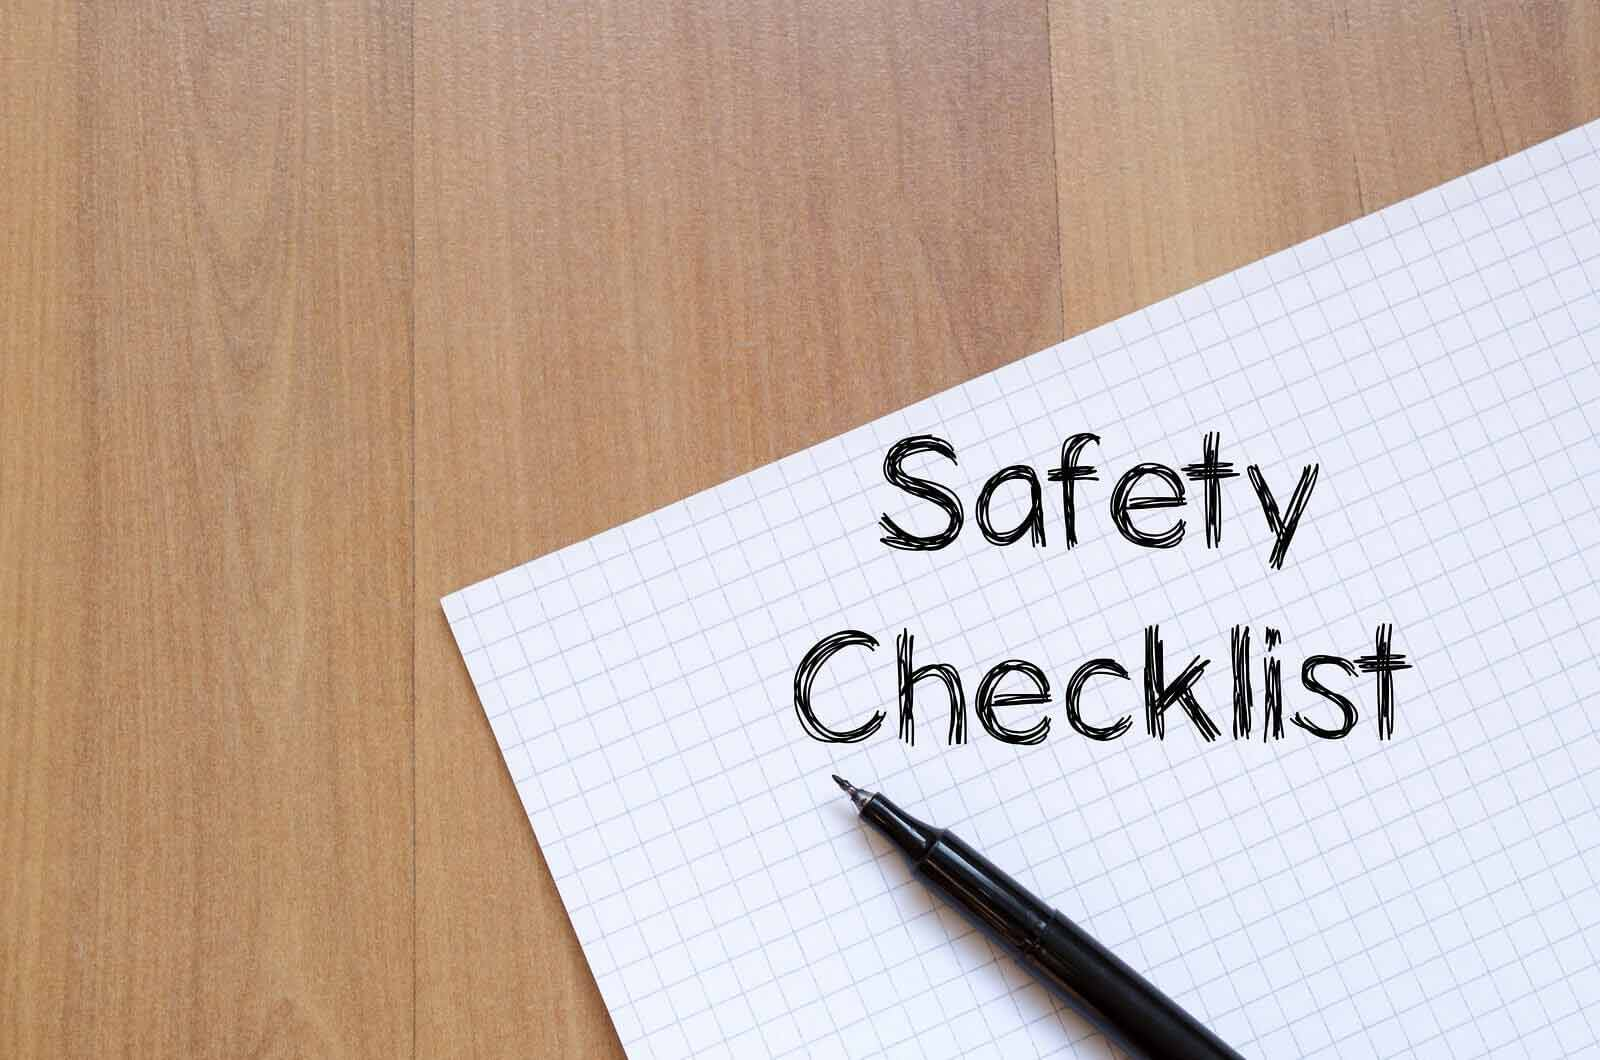 Forklift Safety Training: The Importance of Inspection Checklists